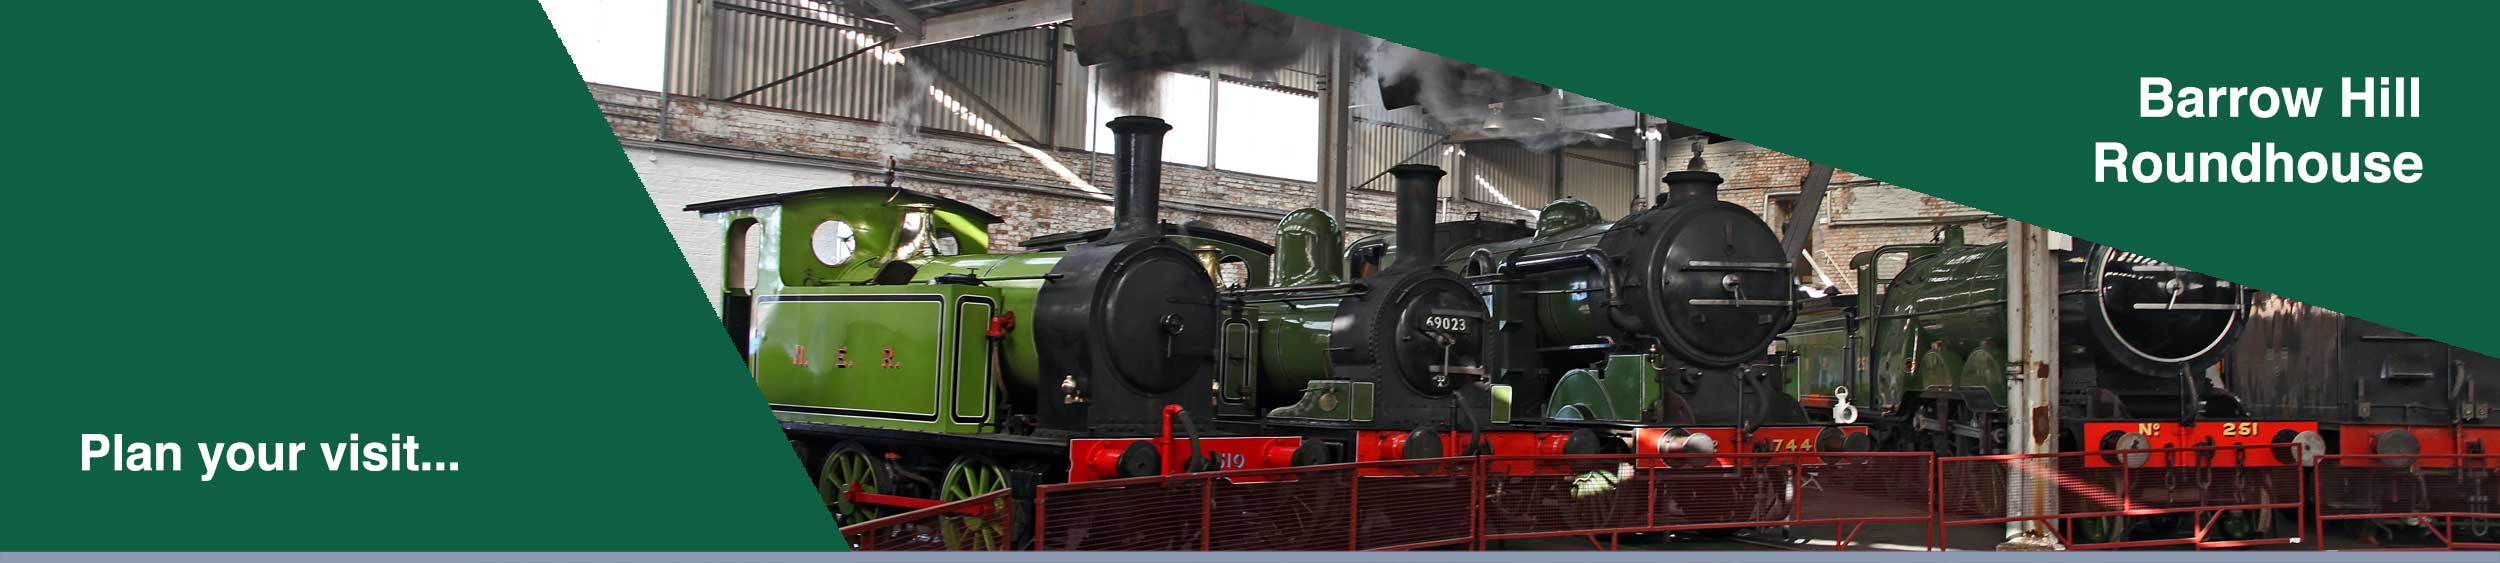 Railway Museum and Historical Roundhouse at Barrow Hill, Derbyshire